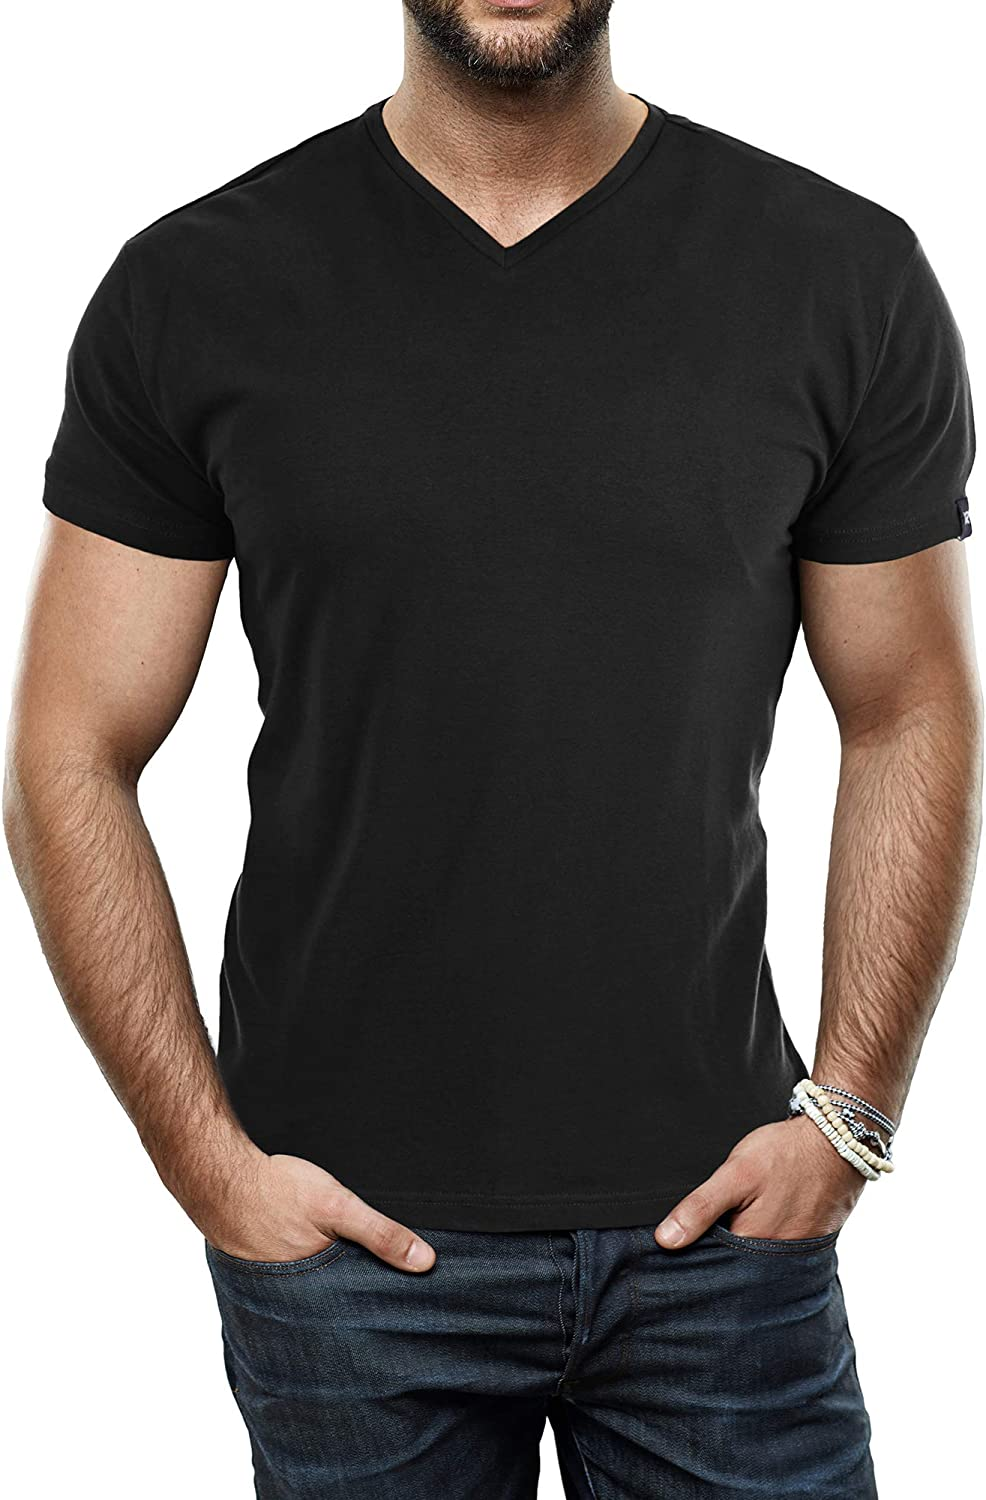 X RAY Men's Soft Stretch Cotton Solid Short Sleeve V-Neck Slim Fit T-Shirt, Fashion Casual Tee for Men